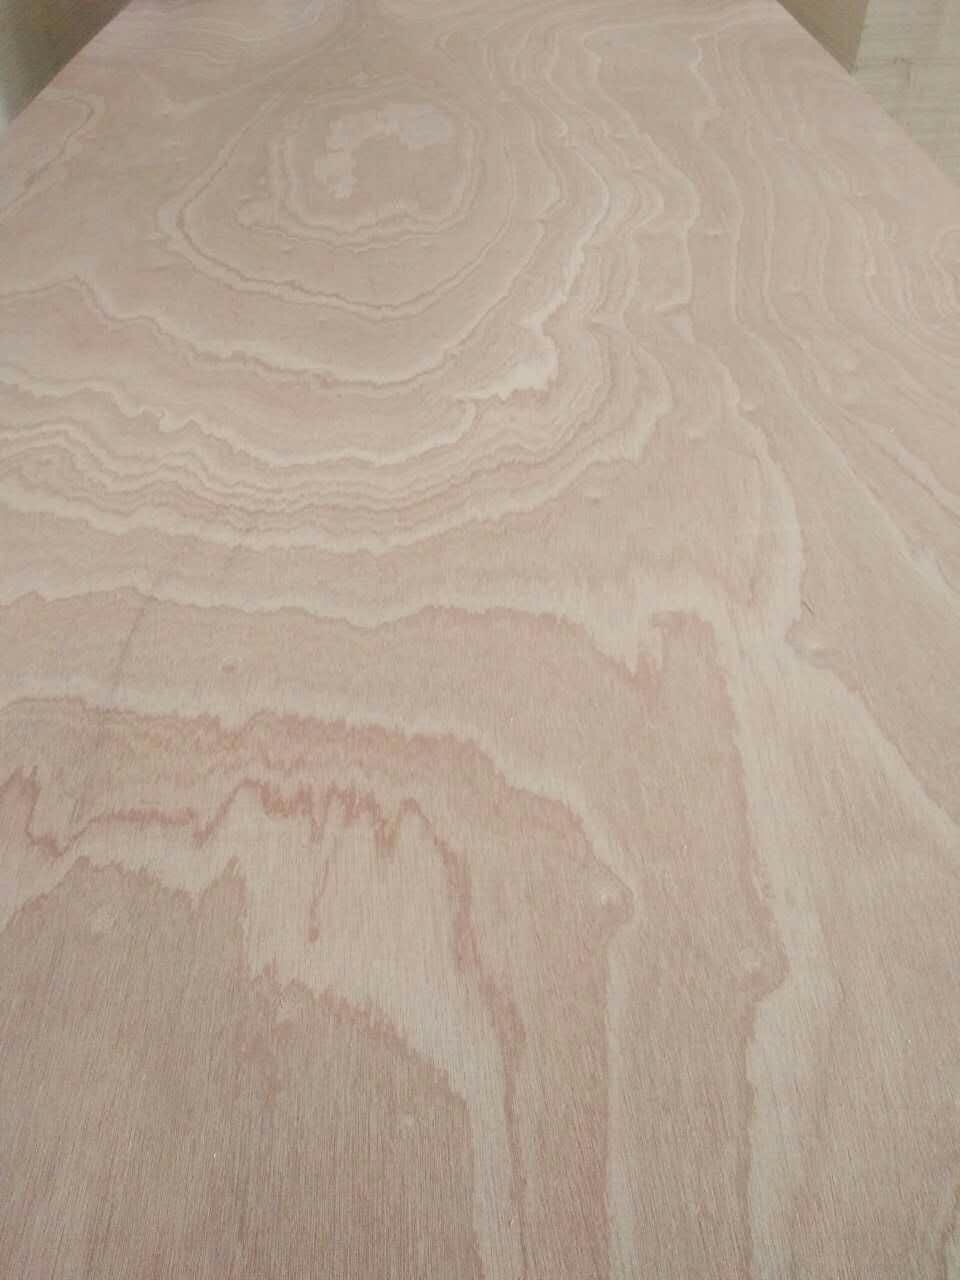 SAPELE PLYWOOD  沙比利胶合板